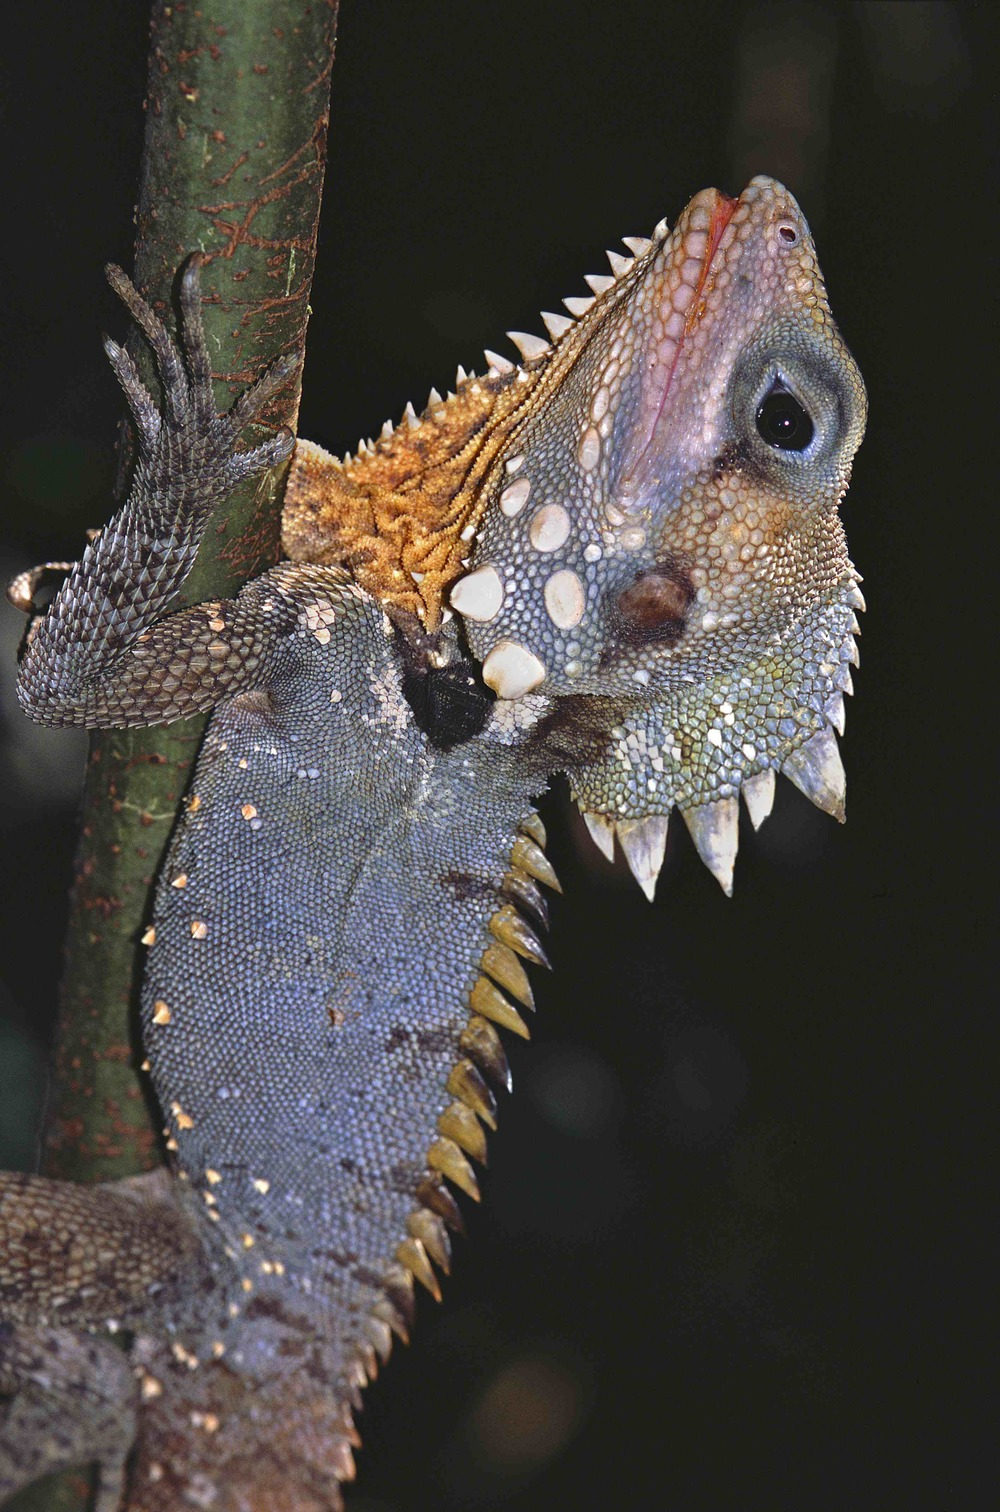 There be dragons... a Boyd's forest dragon, another unique denizen of the Queensland Wet Tropics (photo (c) Martin Cohen)